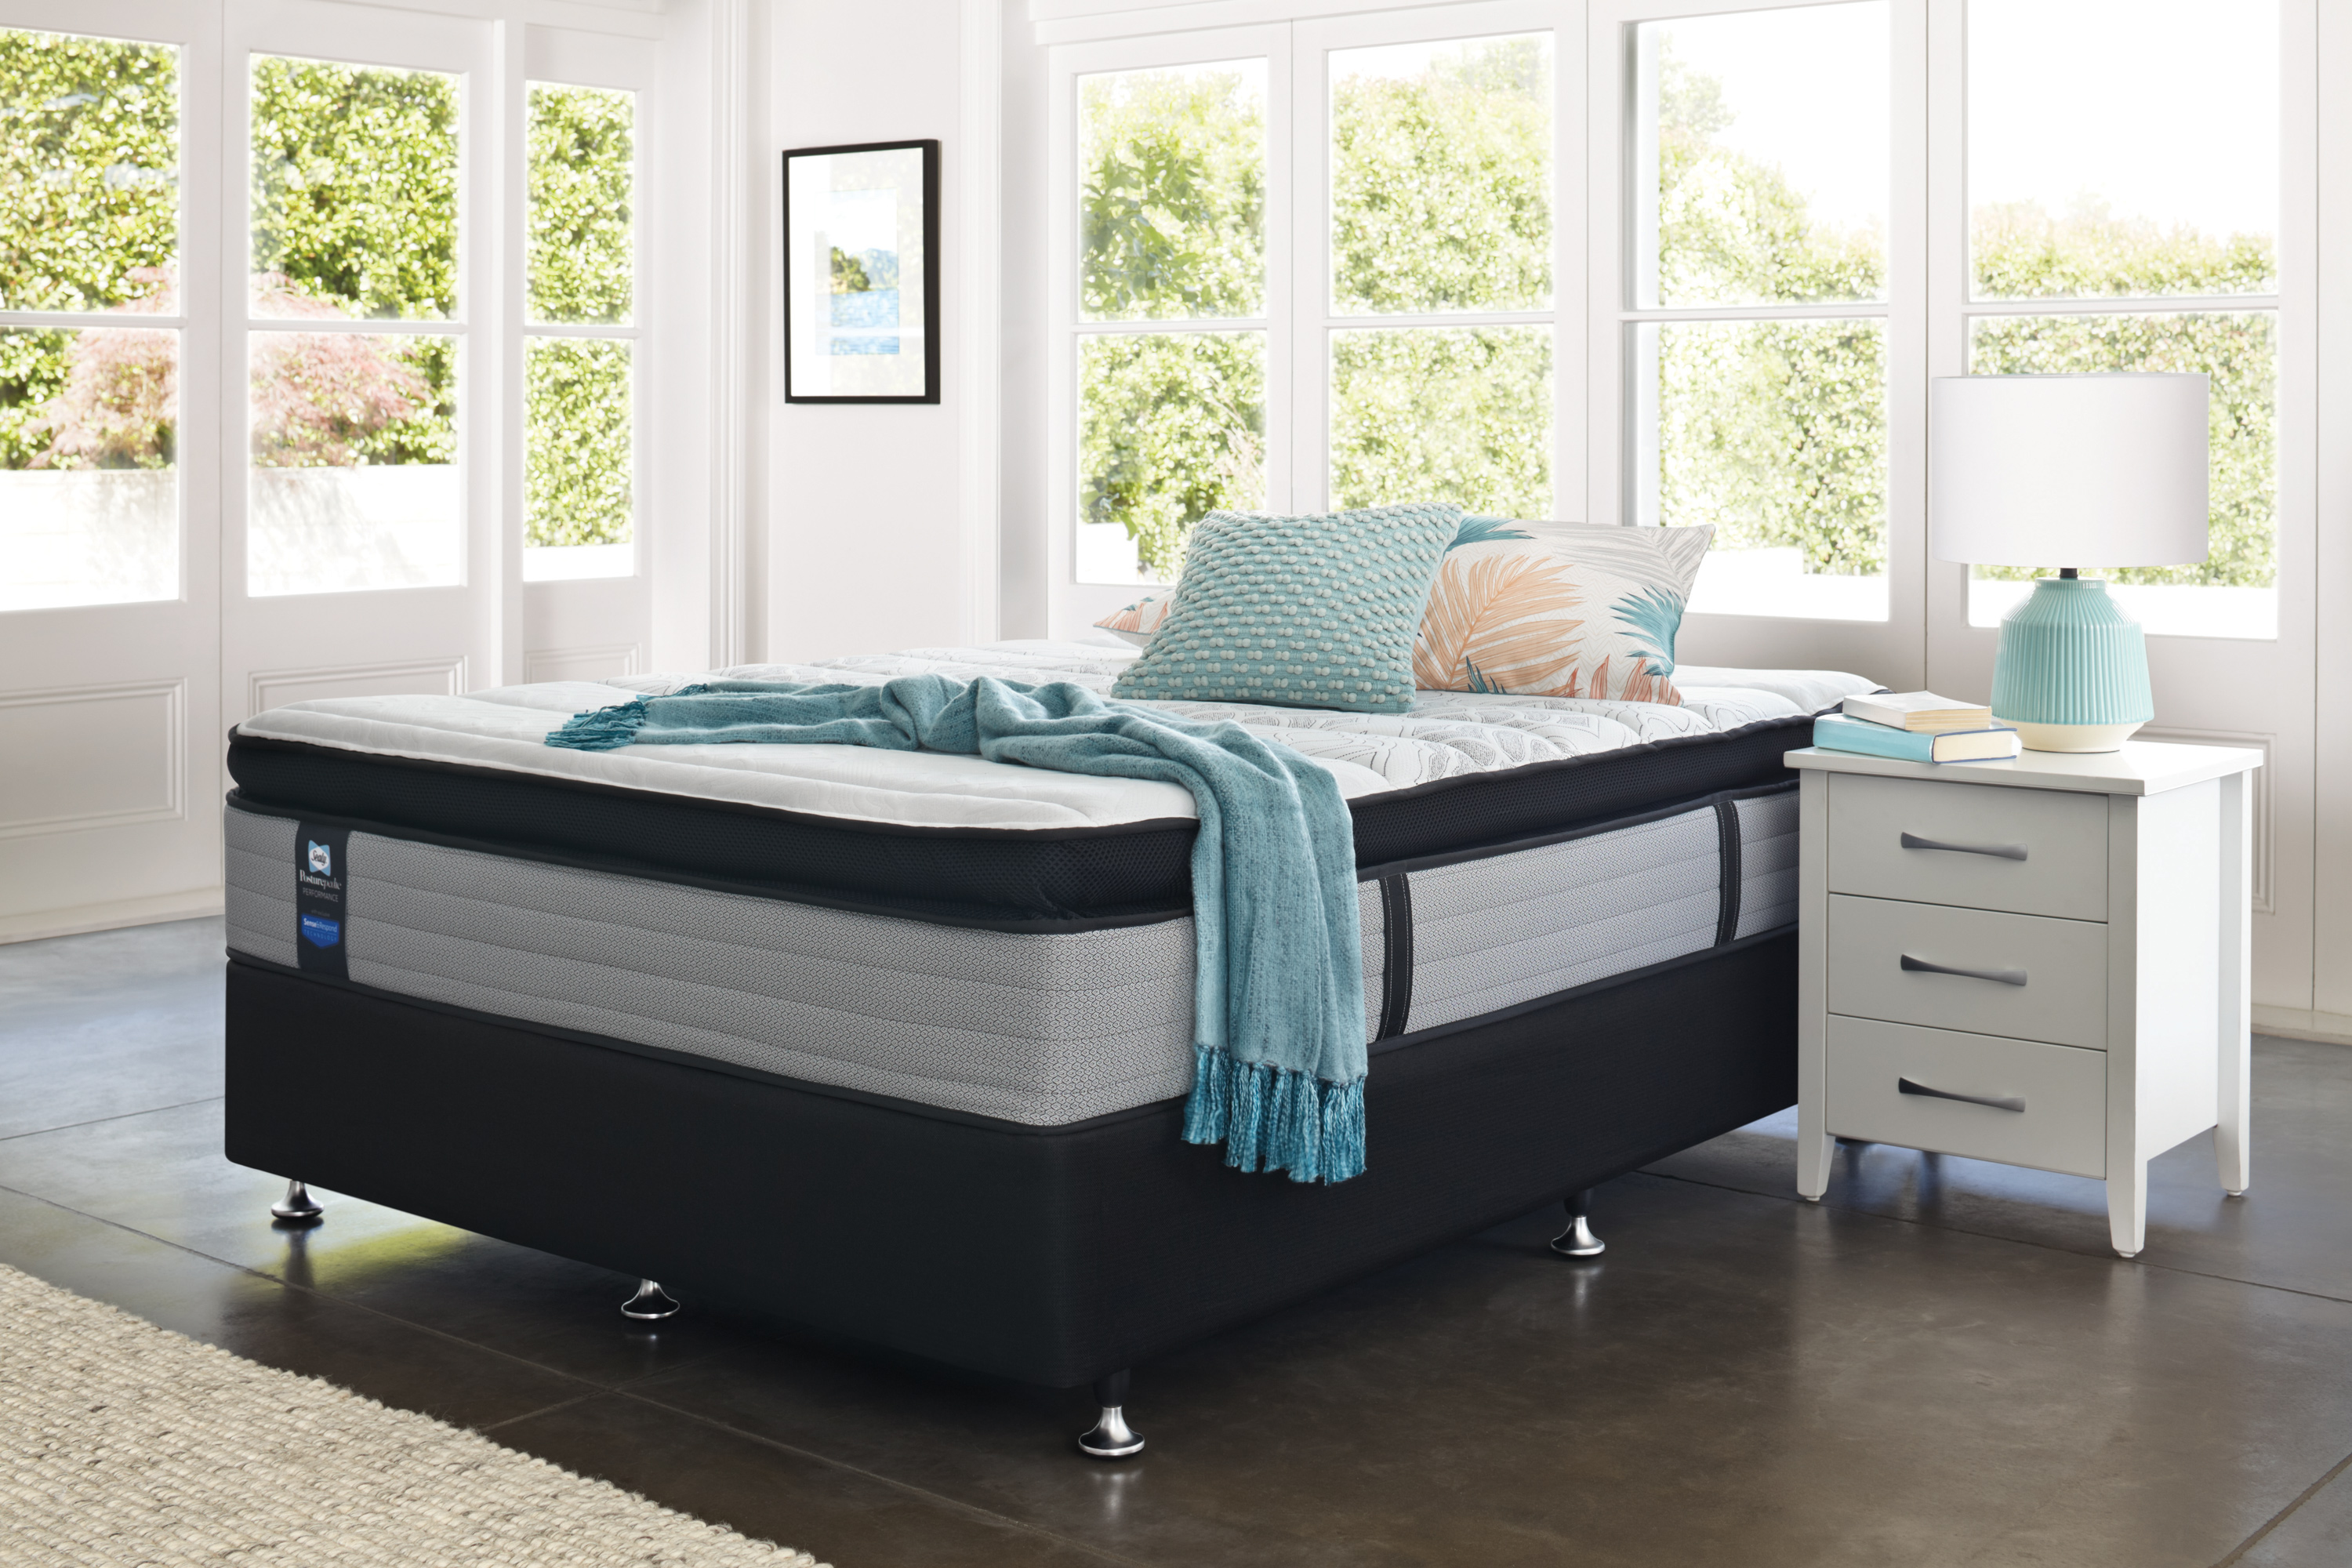 Beds And Beds Bedroom Furniture Beds Bed Mirror Lighting Harvey Norman